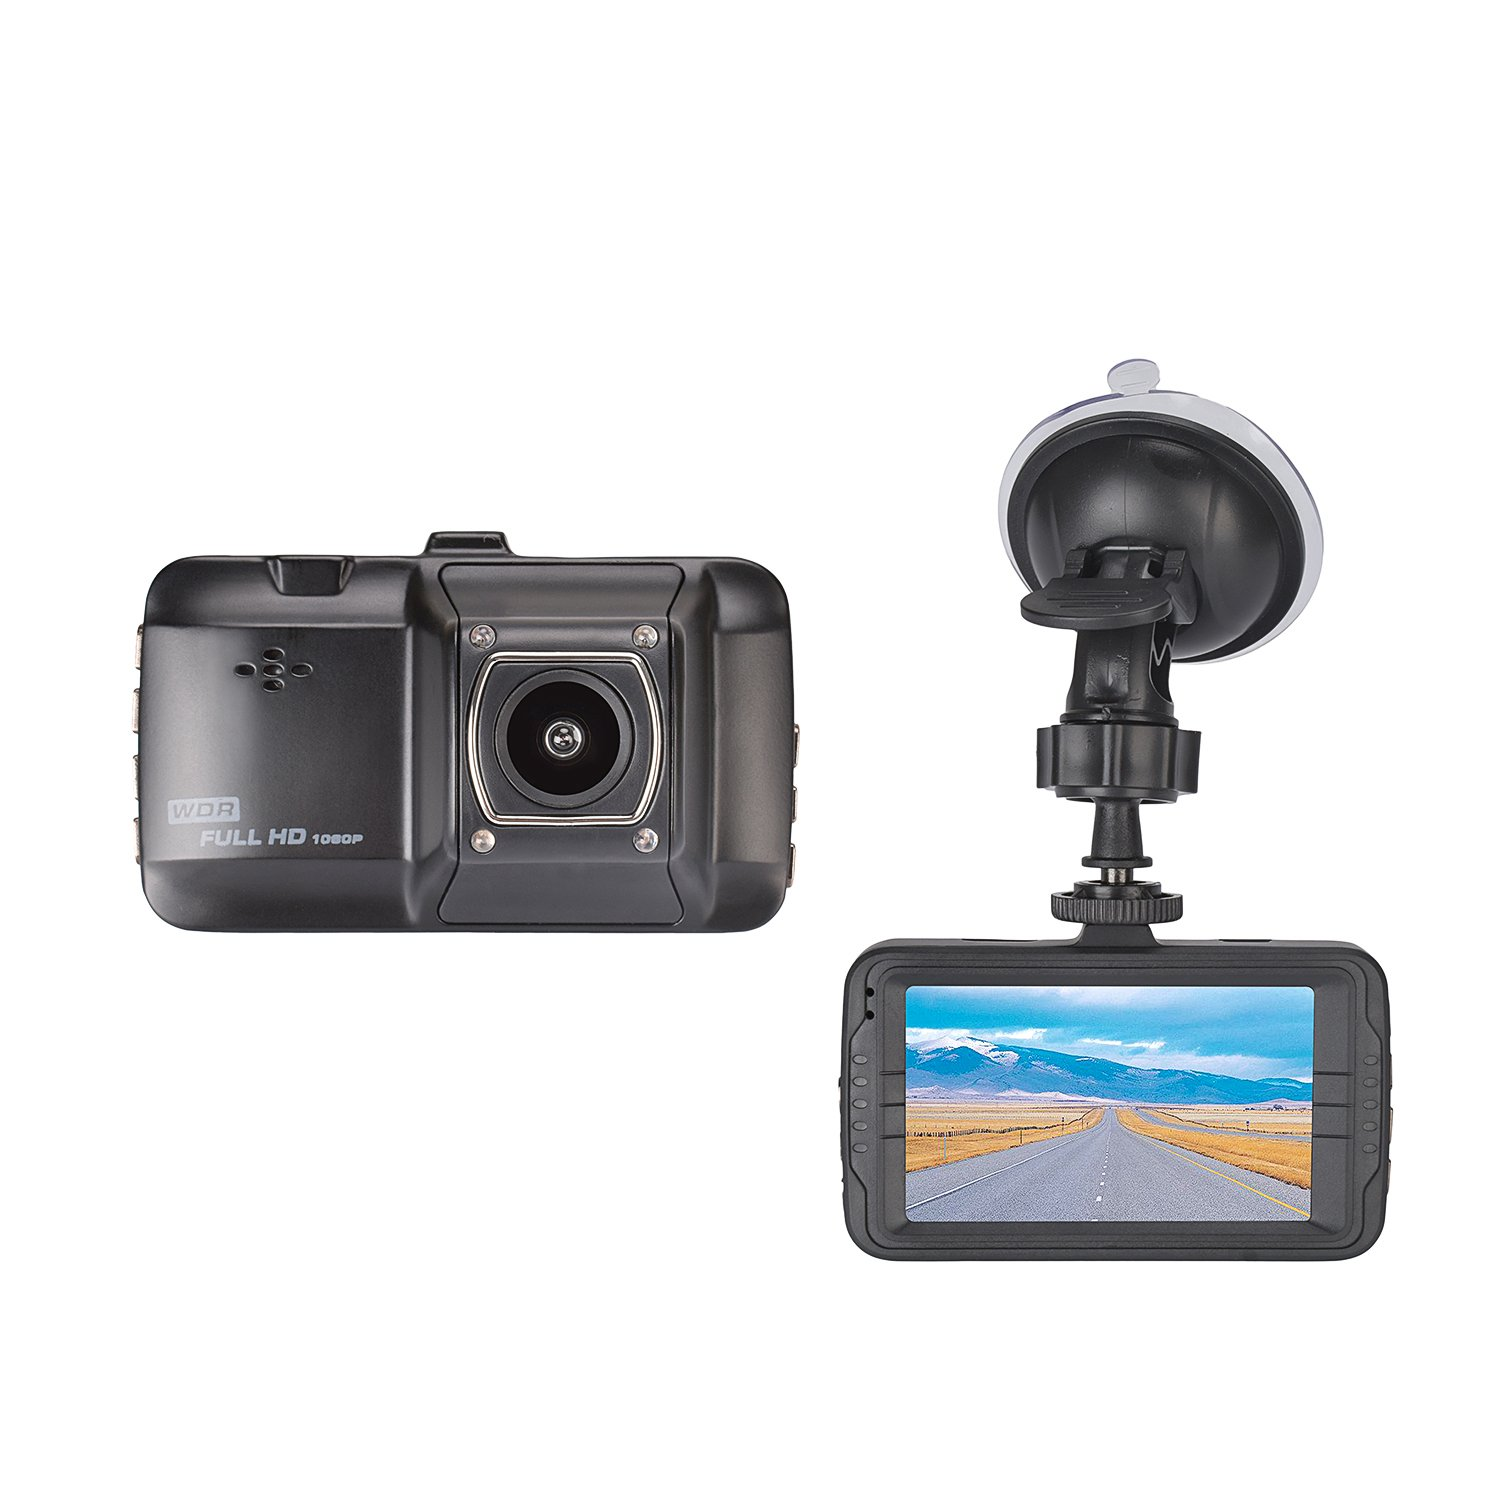 Elitehood Car Recorder 1080P Full HD Extreme 170 Degrees Ultra Wide-Angle Lens 3.0 inch LCD Screen for Loop Recording